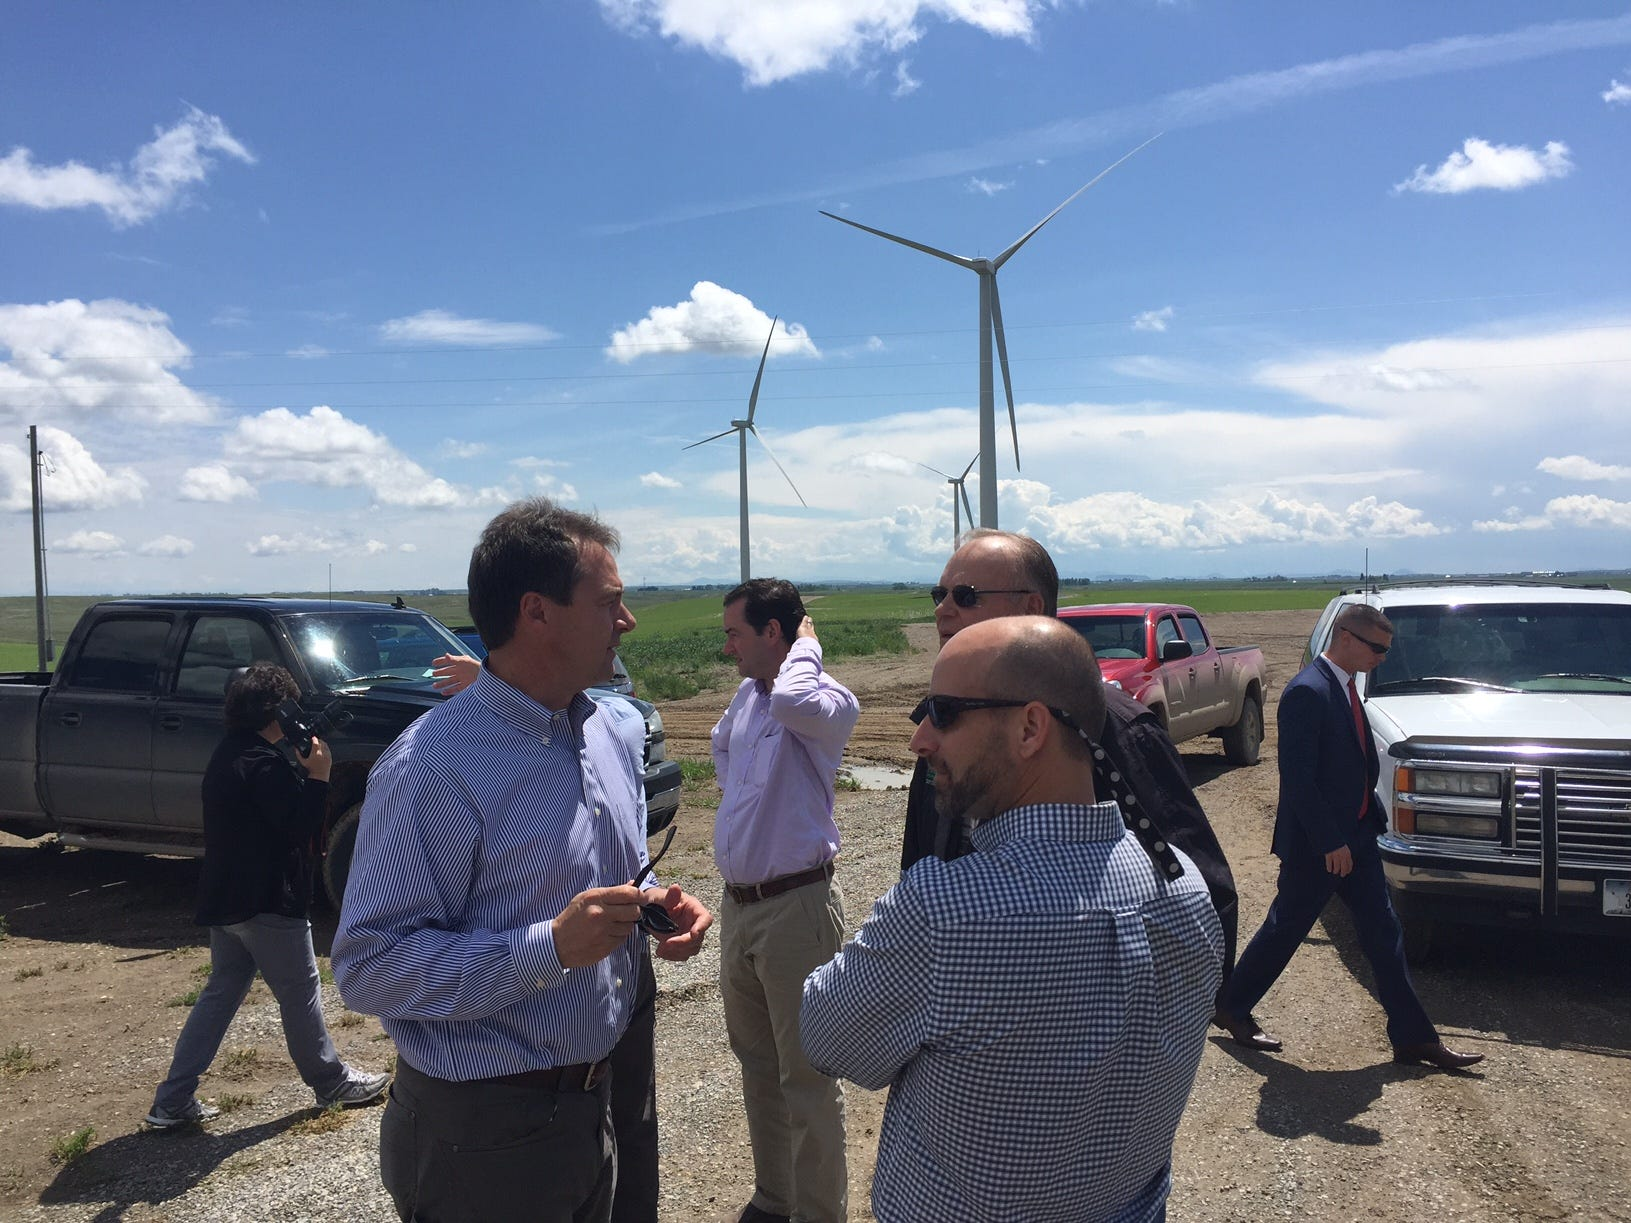 Tribune photo/Karl Puckett Gov. Steve Bullock talks with landowner Marvin Klinker, right, and Allan Frankl of Dick Anderson Construction, foreground, during a visit to the Greenfield wind project near Fairfield.